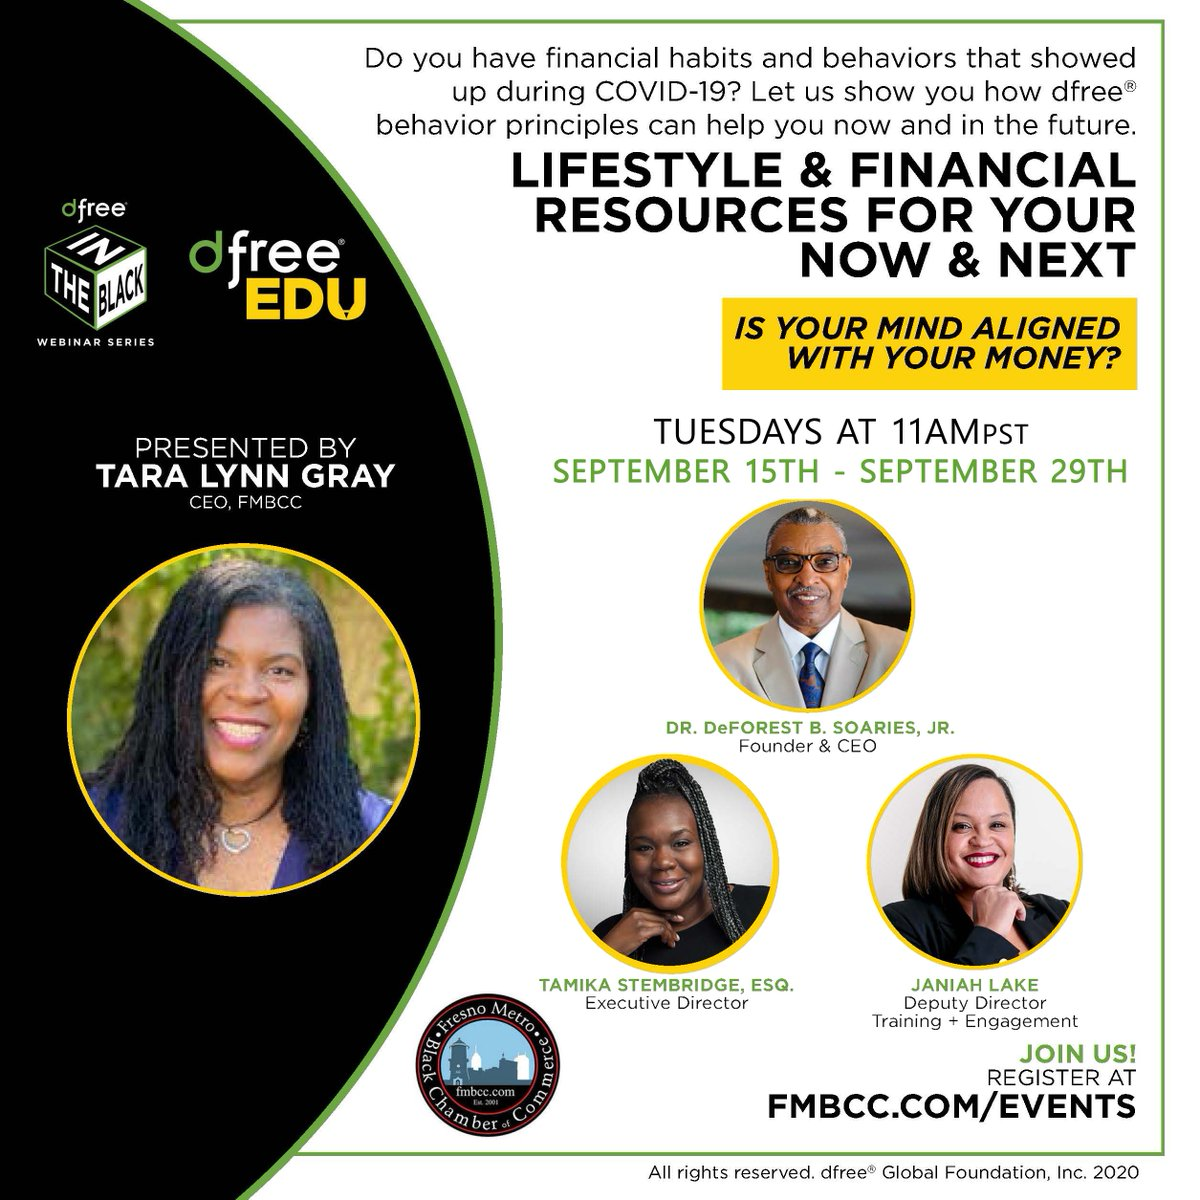 Now is the time to begin your journey to #financialwealth and #debtfreedom! Join us on TUESDAYS at 11am as we continuing our @DFree Financial Literacy webinar series. ⬇️⬇️⬇️ Register Here: https://t.co/mOB0WZkBXb https://t.co/8UbBVKIfo2